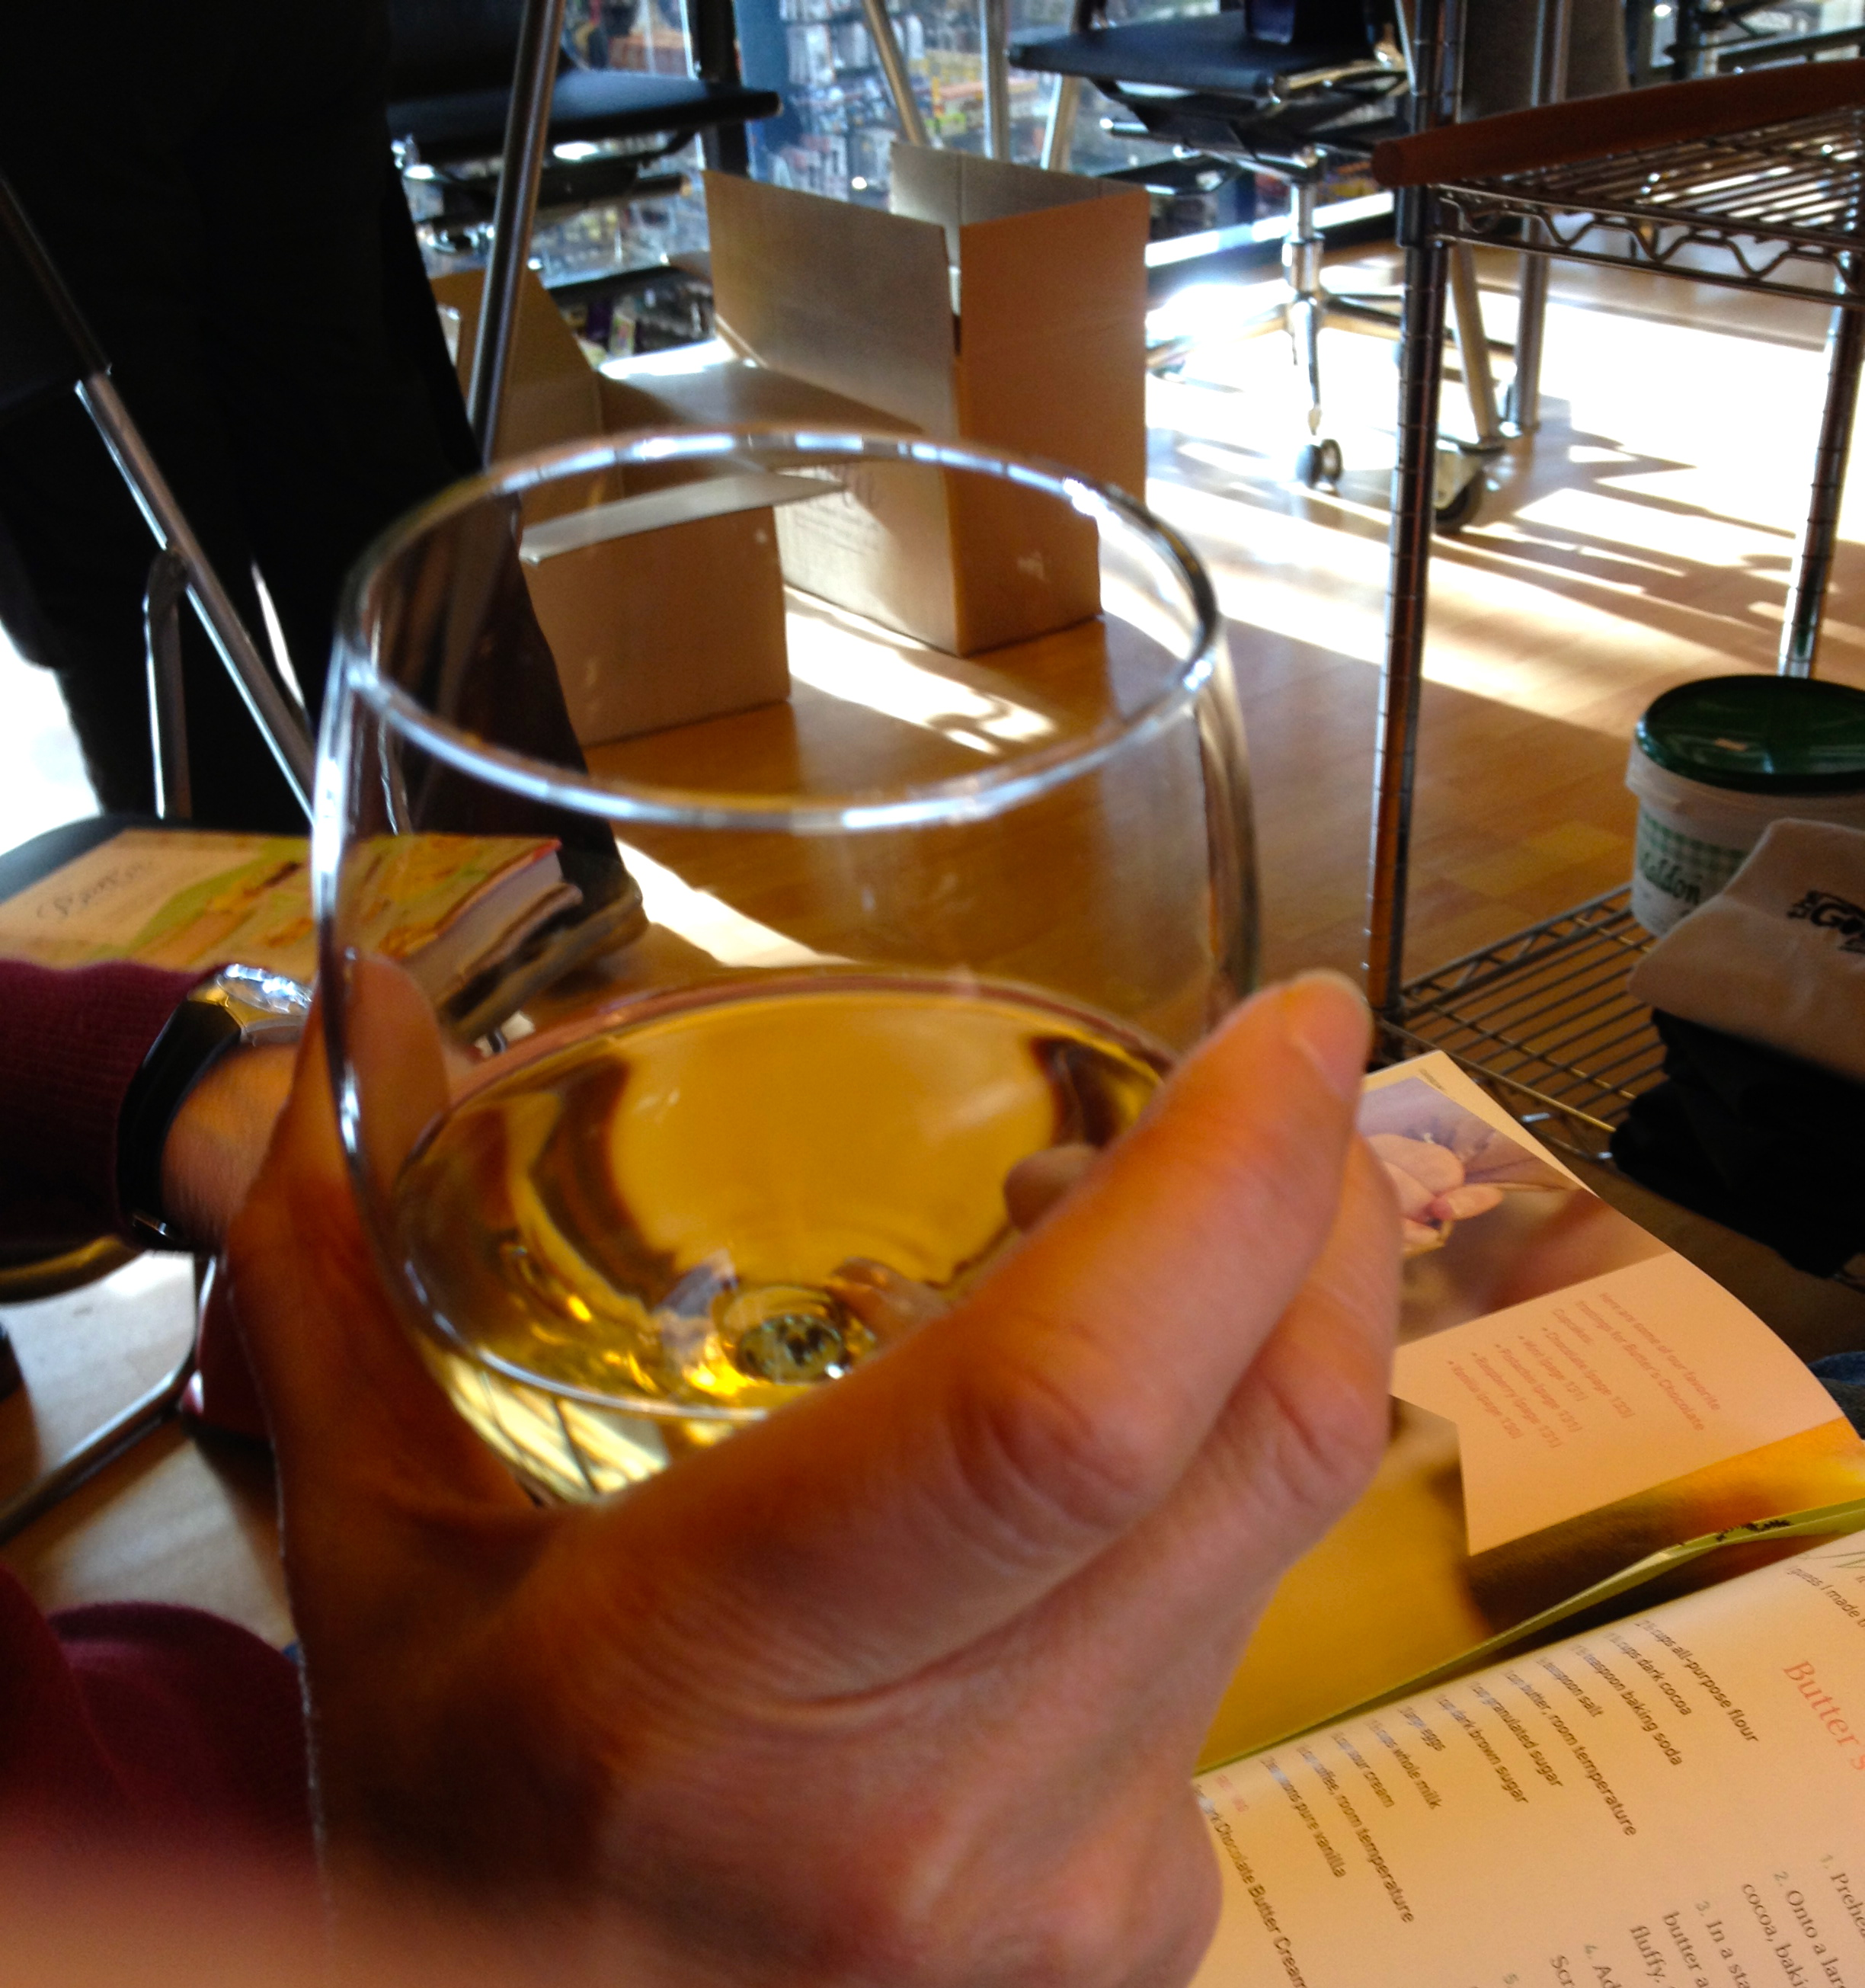 grasping glass of white wine http://kellylmckenzie.com/Christmas-on-the-road/